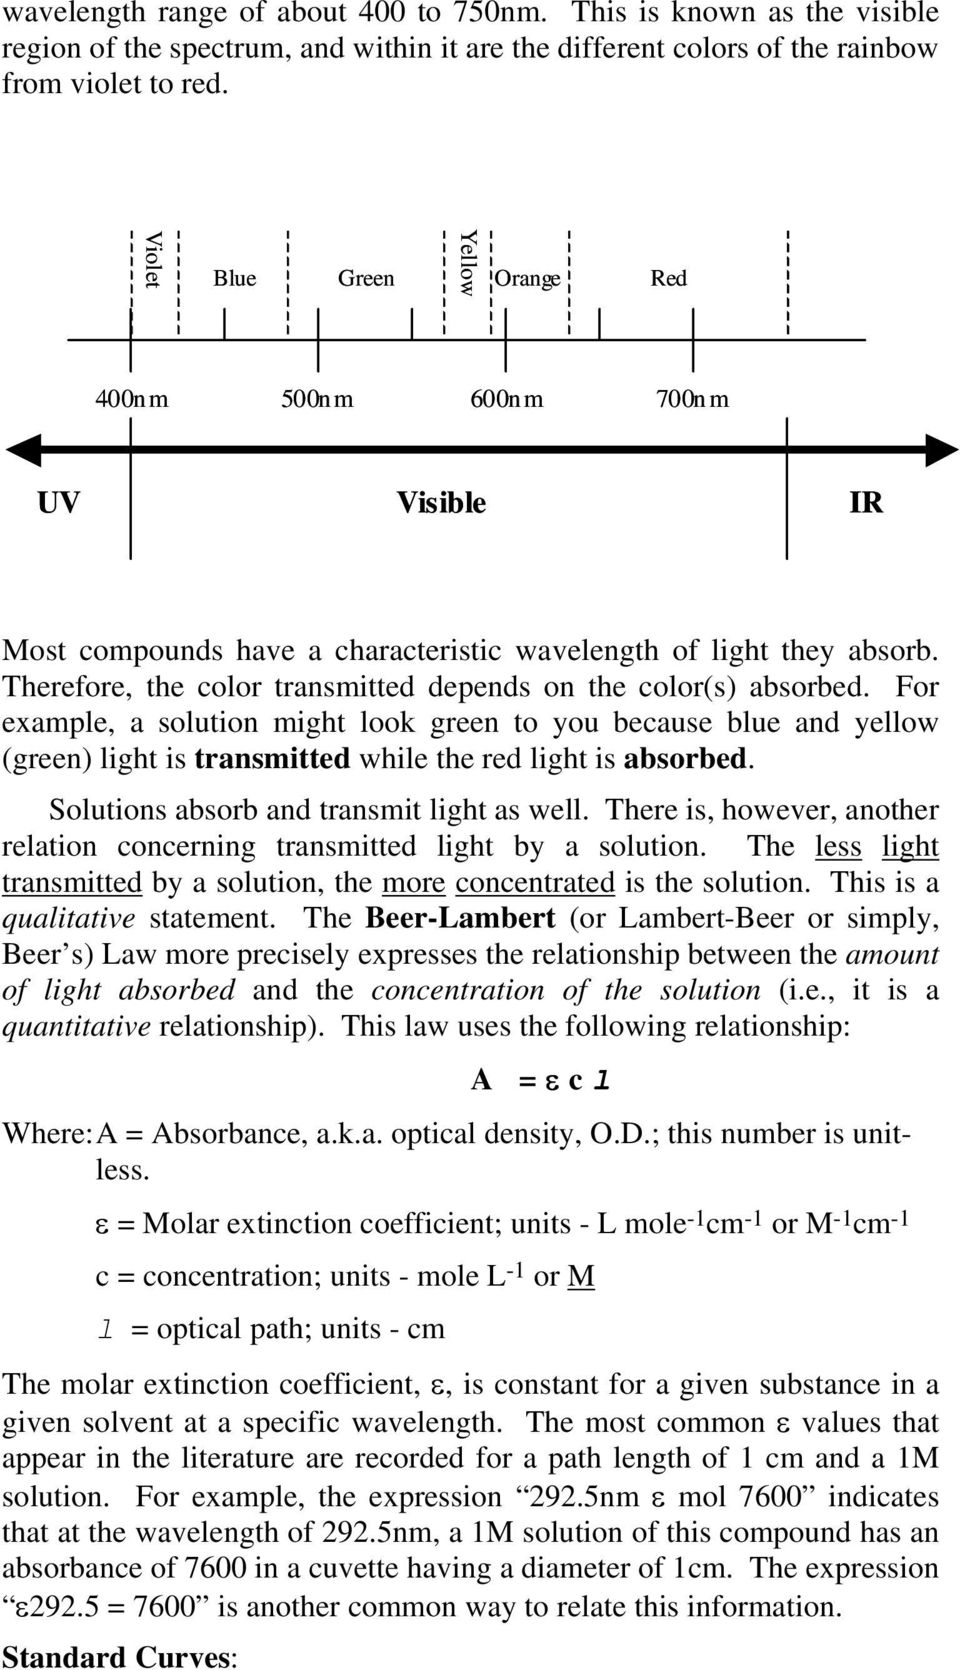 Therefore, the color transmitted depends on the color(s) absorbed. For example, a solution might look green to you because blue and yellow (green) light is transmitted while the red light is absorbed.